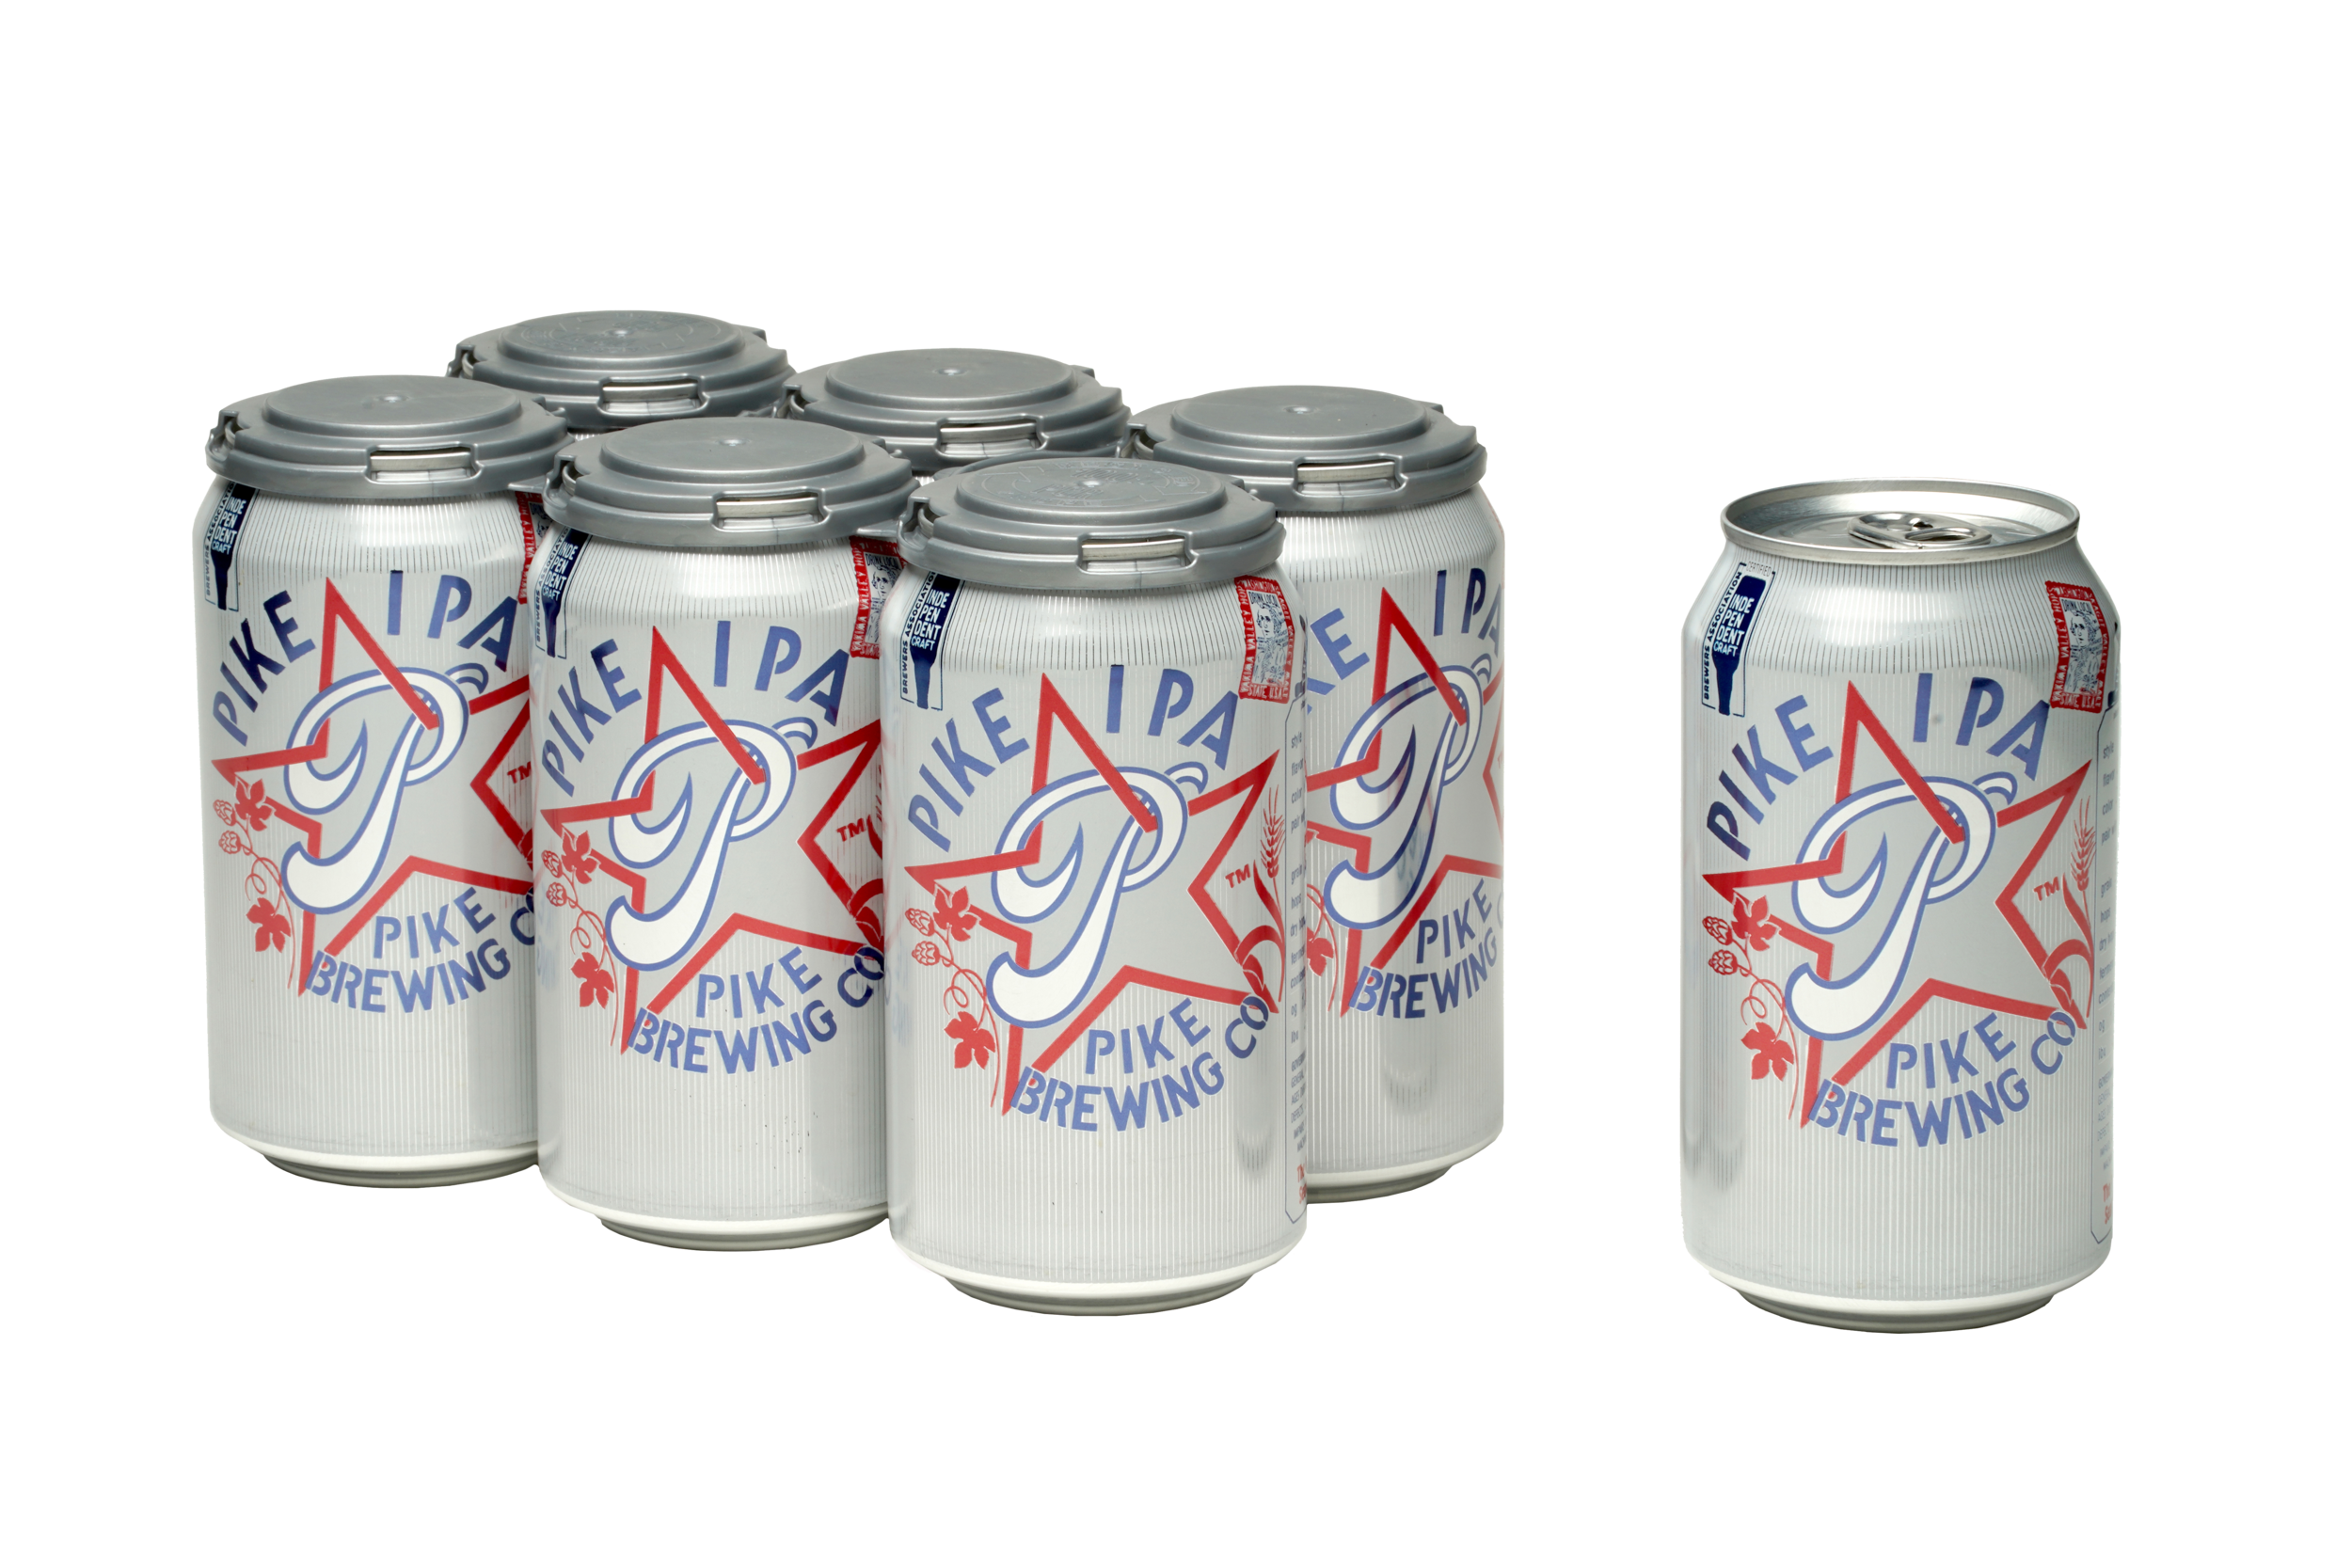 Pike IPA cans